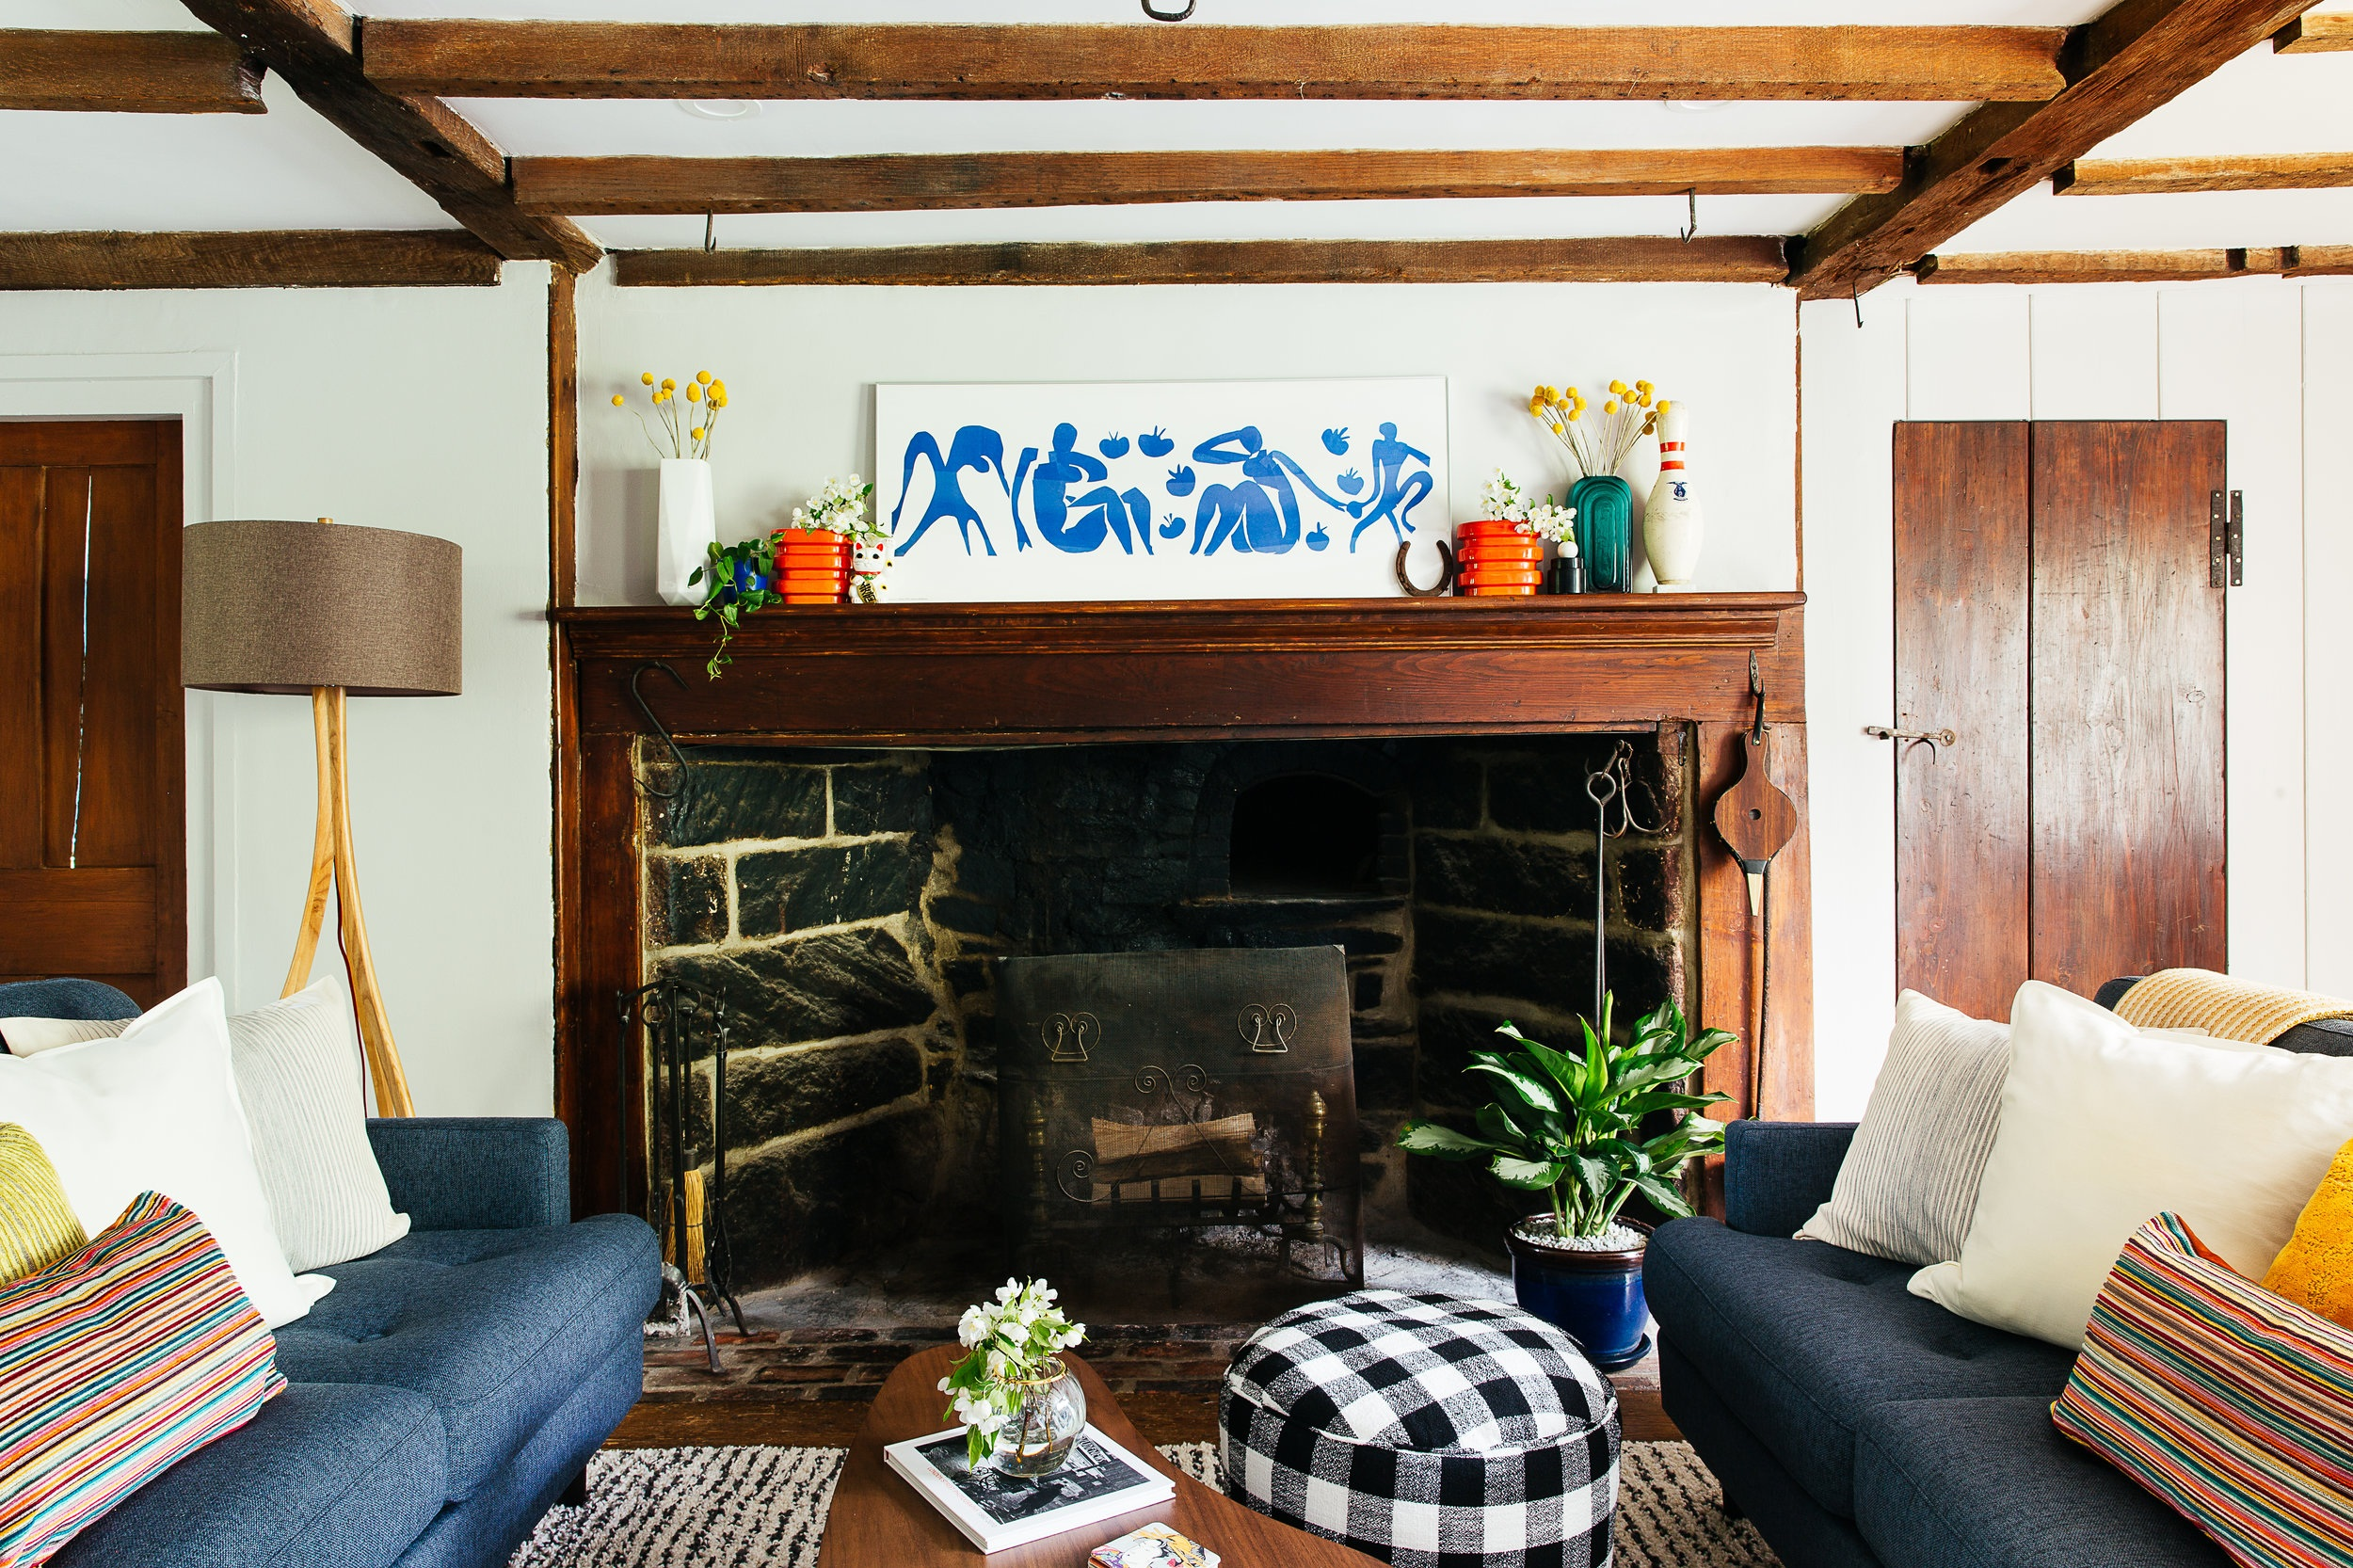 Antique+farmhouse+turned+mid+mod+living+room+design+with+double+sofa+in+front+of+1750%27s+fireplace+by+the+rath+project